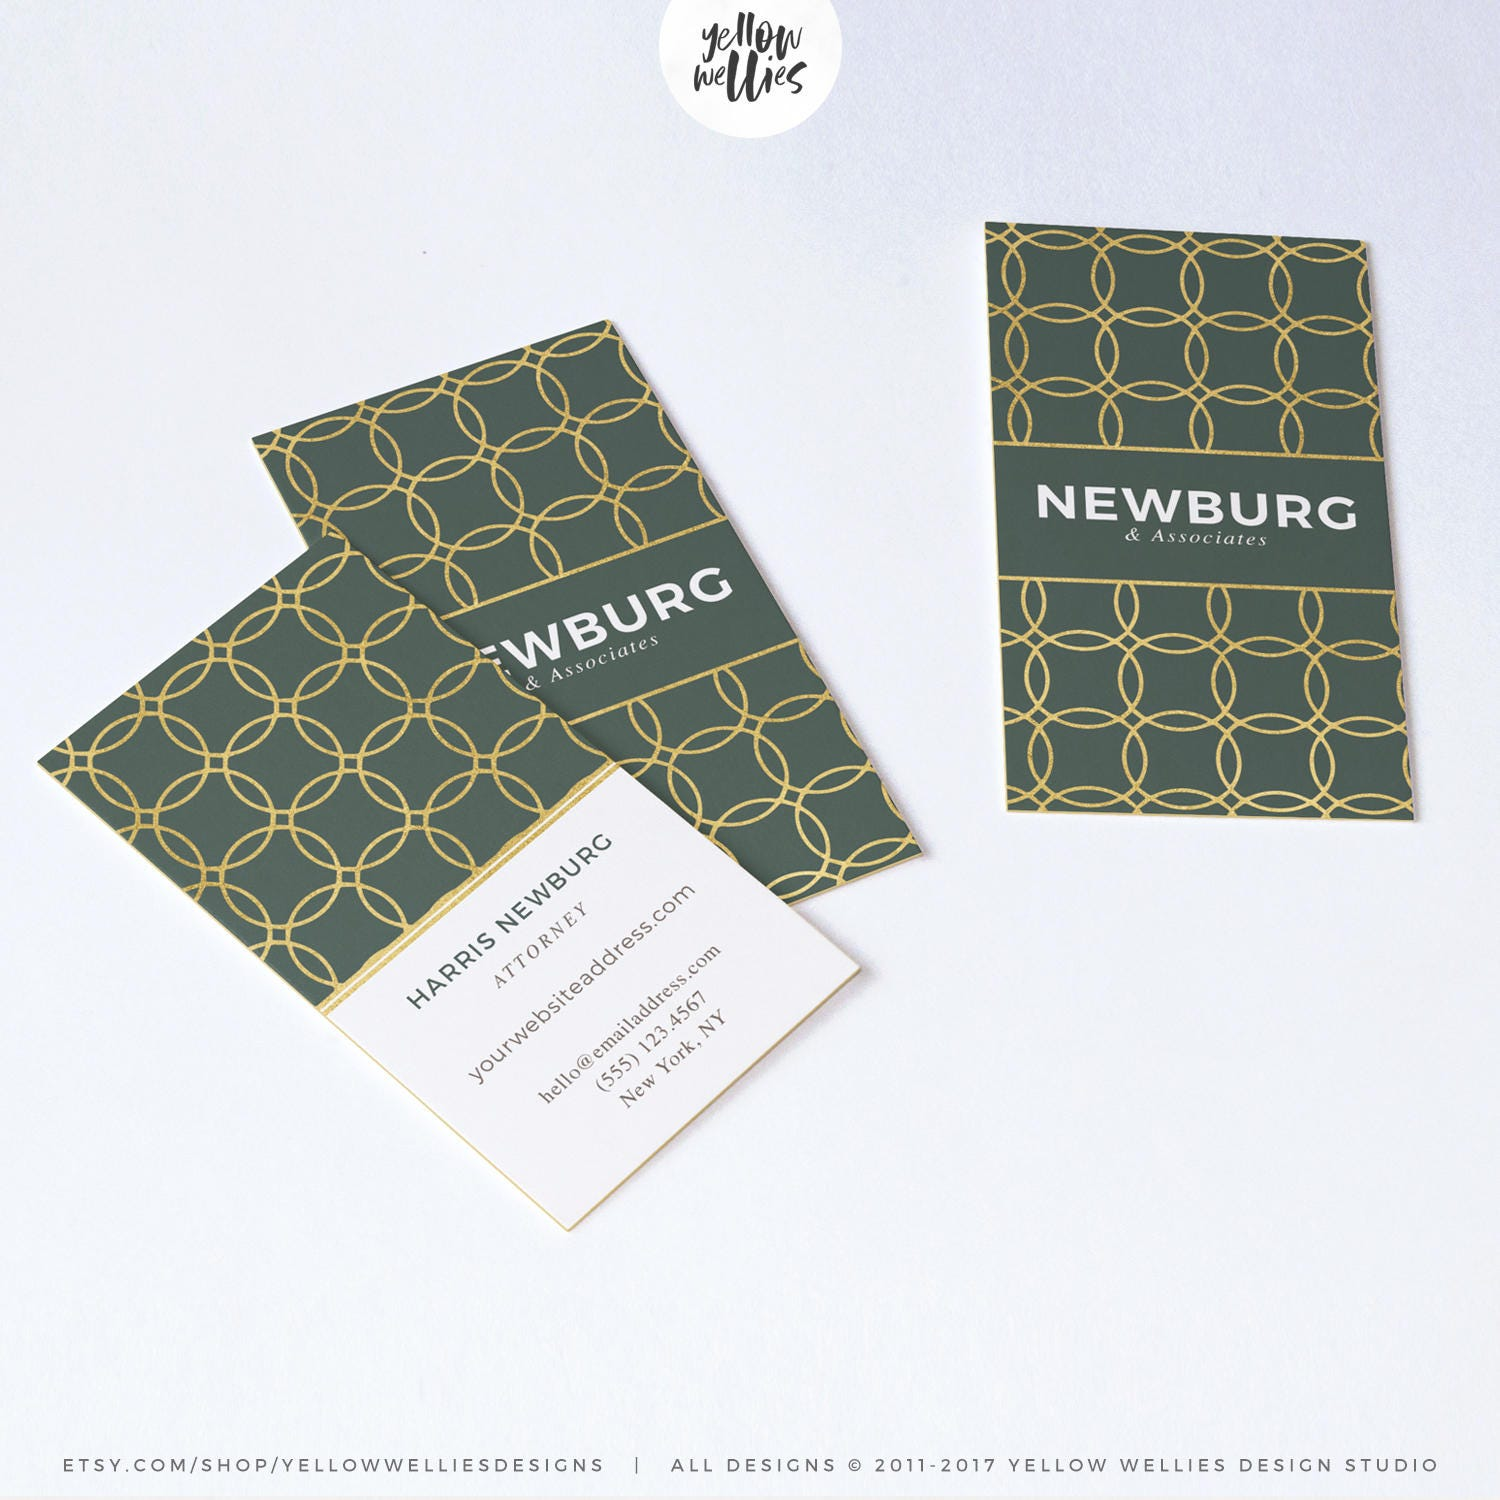 Gold foil business card template moo template moo gold foil gold foil business card template moo template moo gold foil photoshop template accmission Image collections